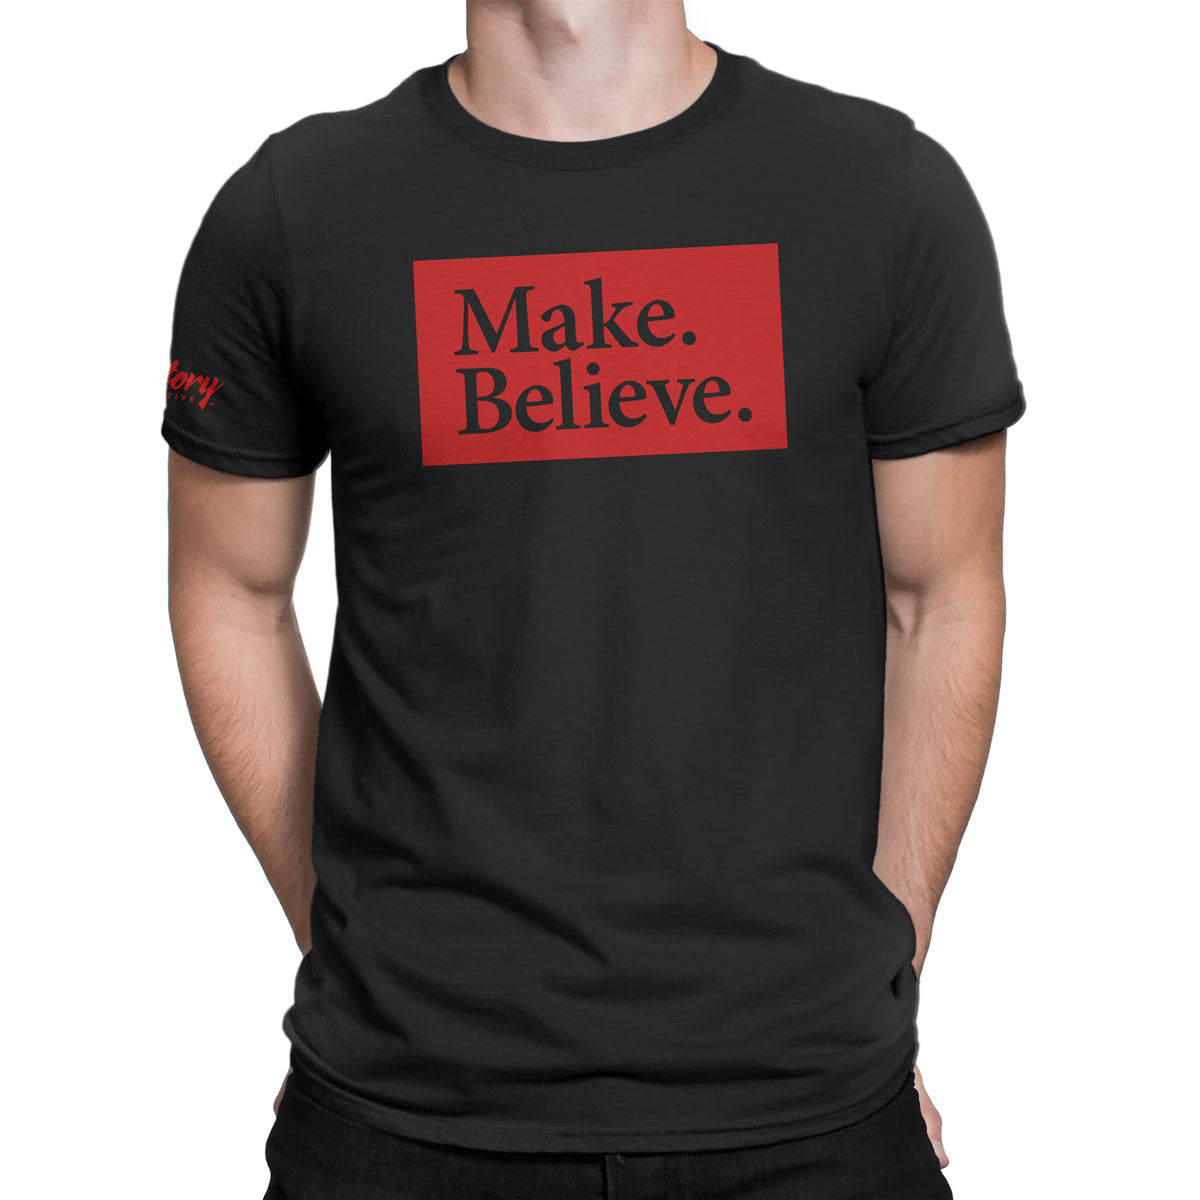 Make. Believe. — Men's T-Shirt (Black)